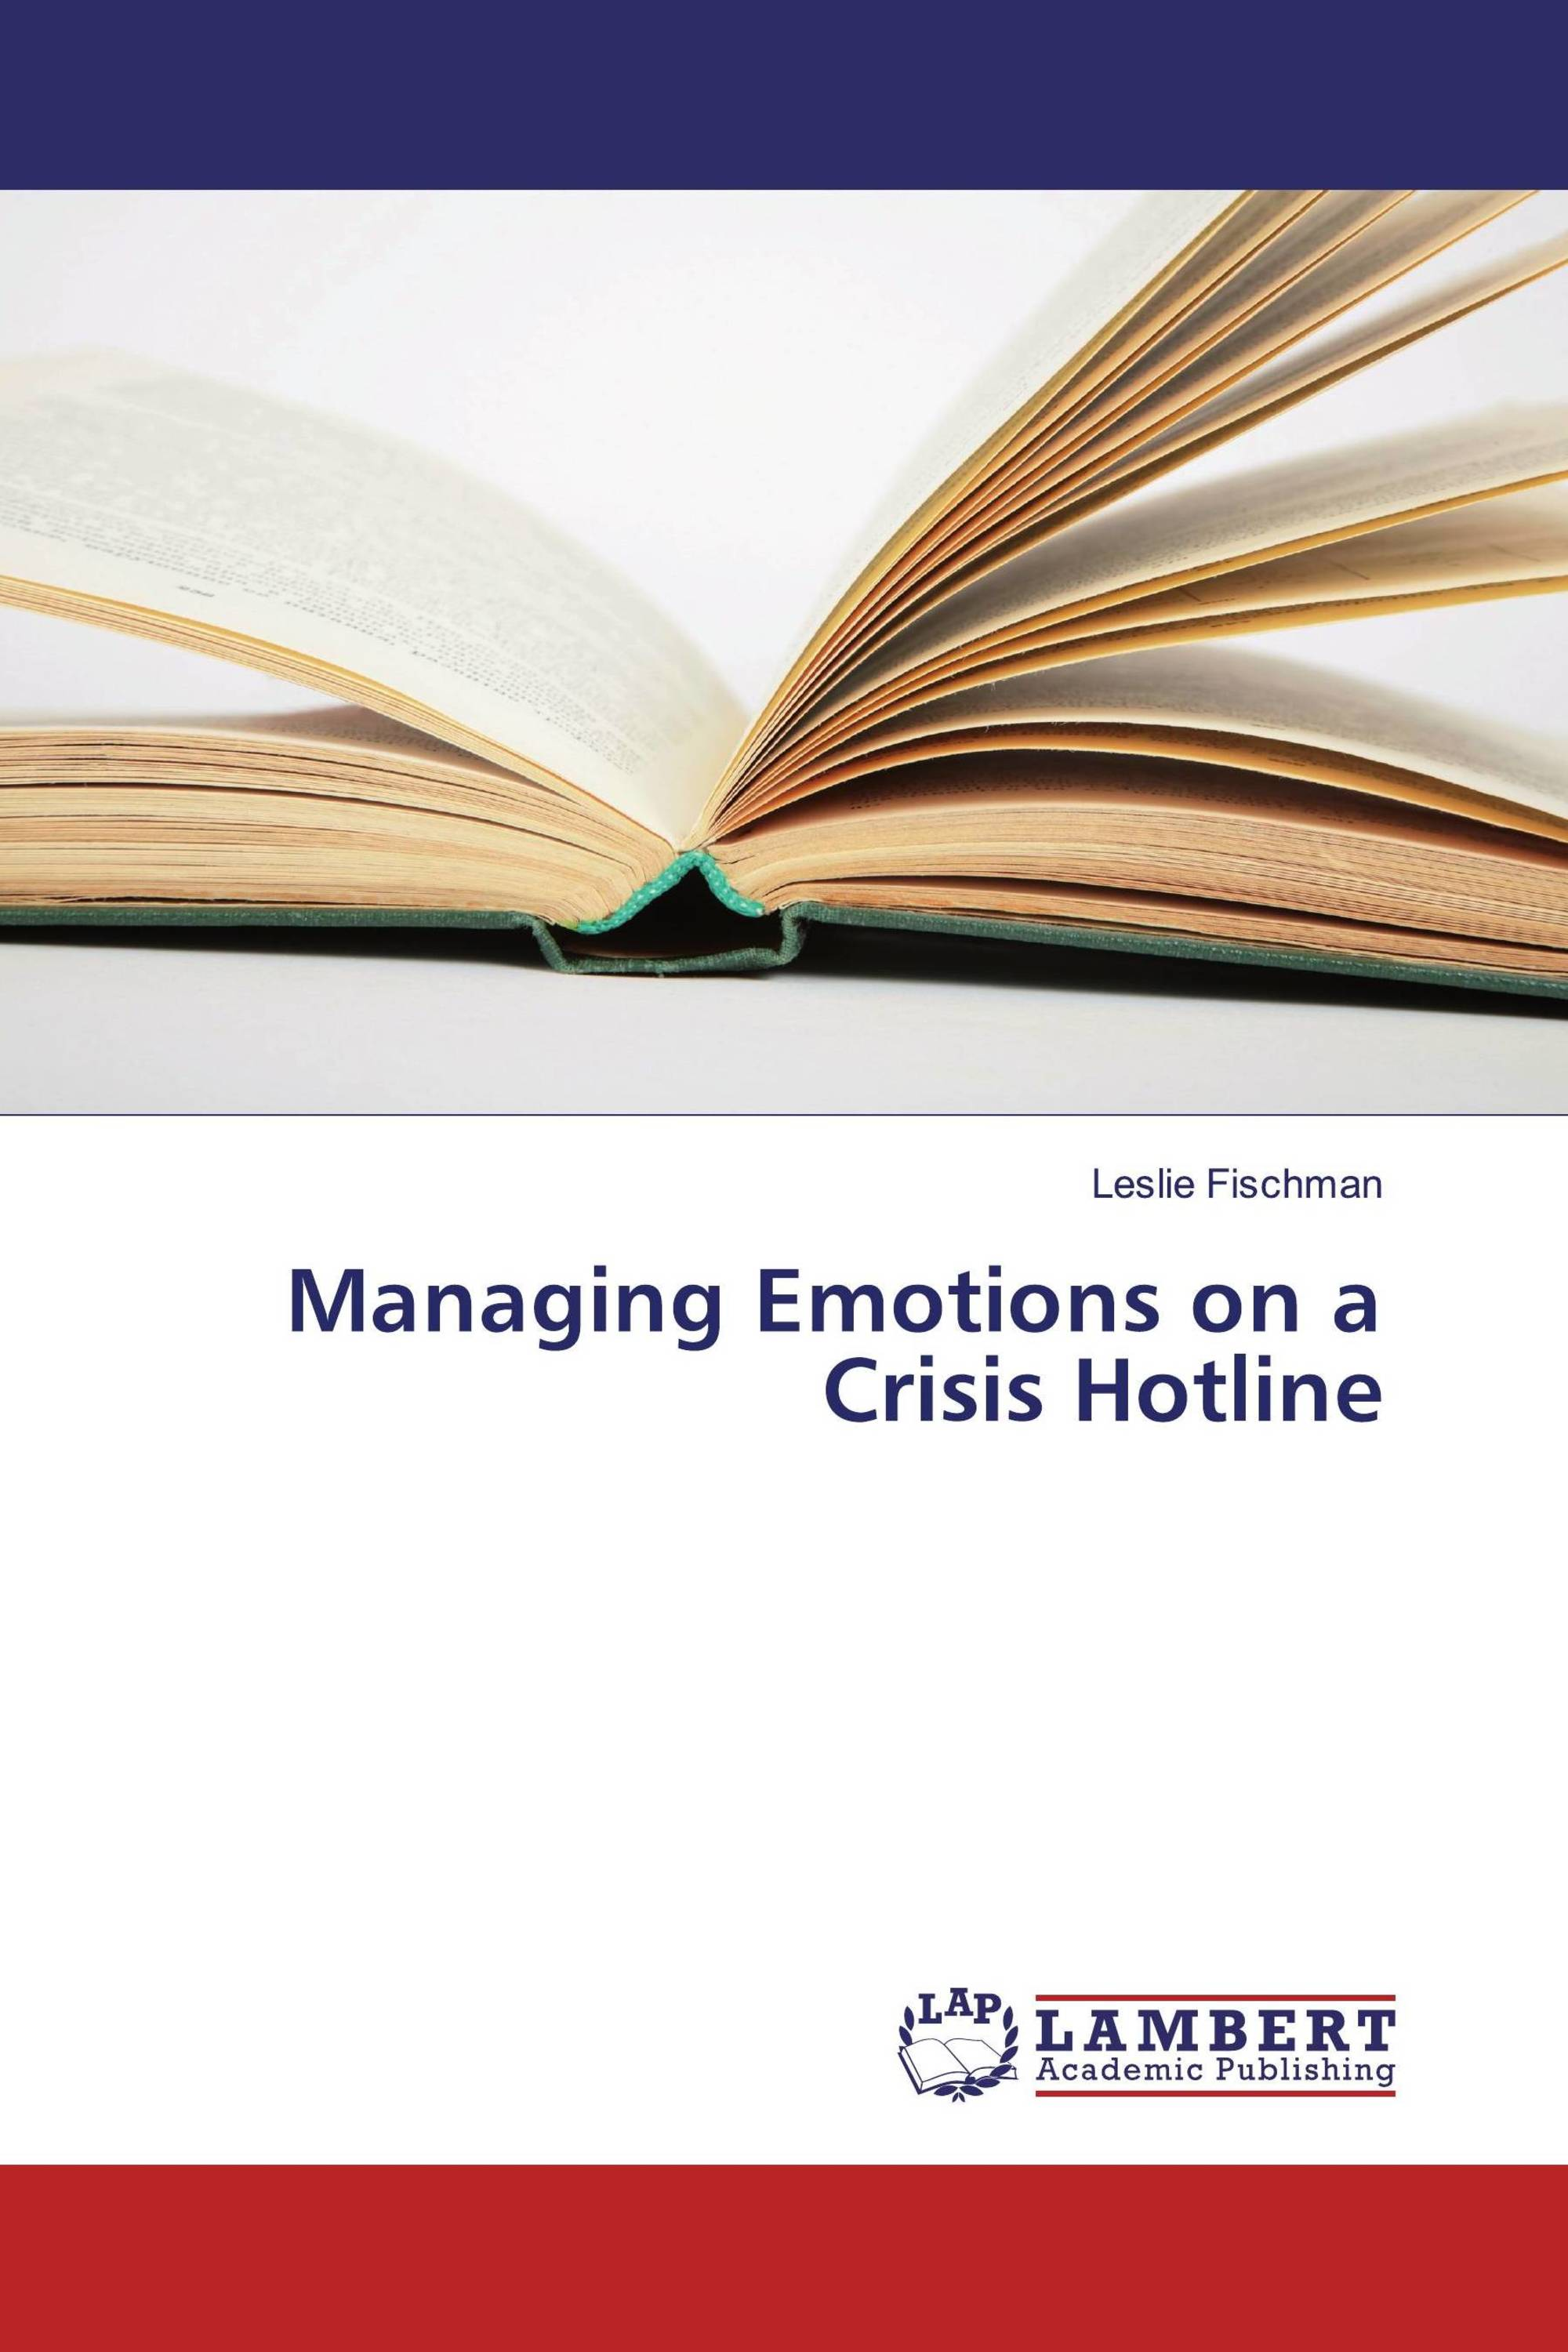 Managing Emotions on a Crisis Hotline